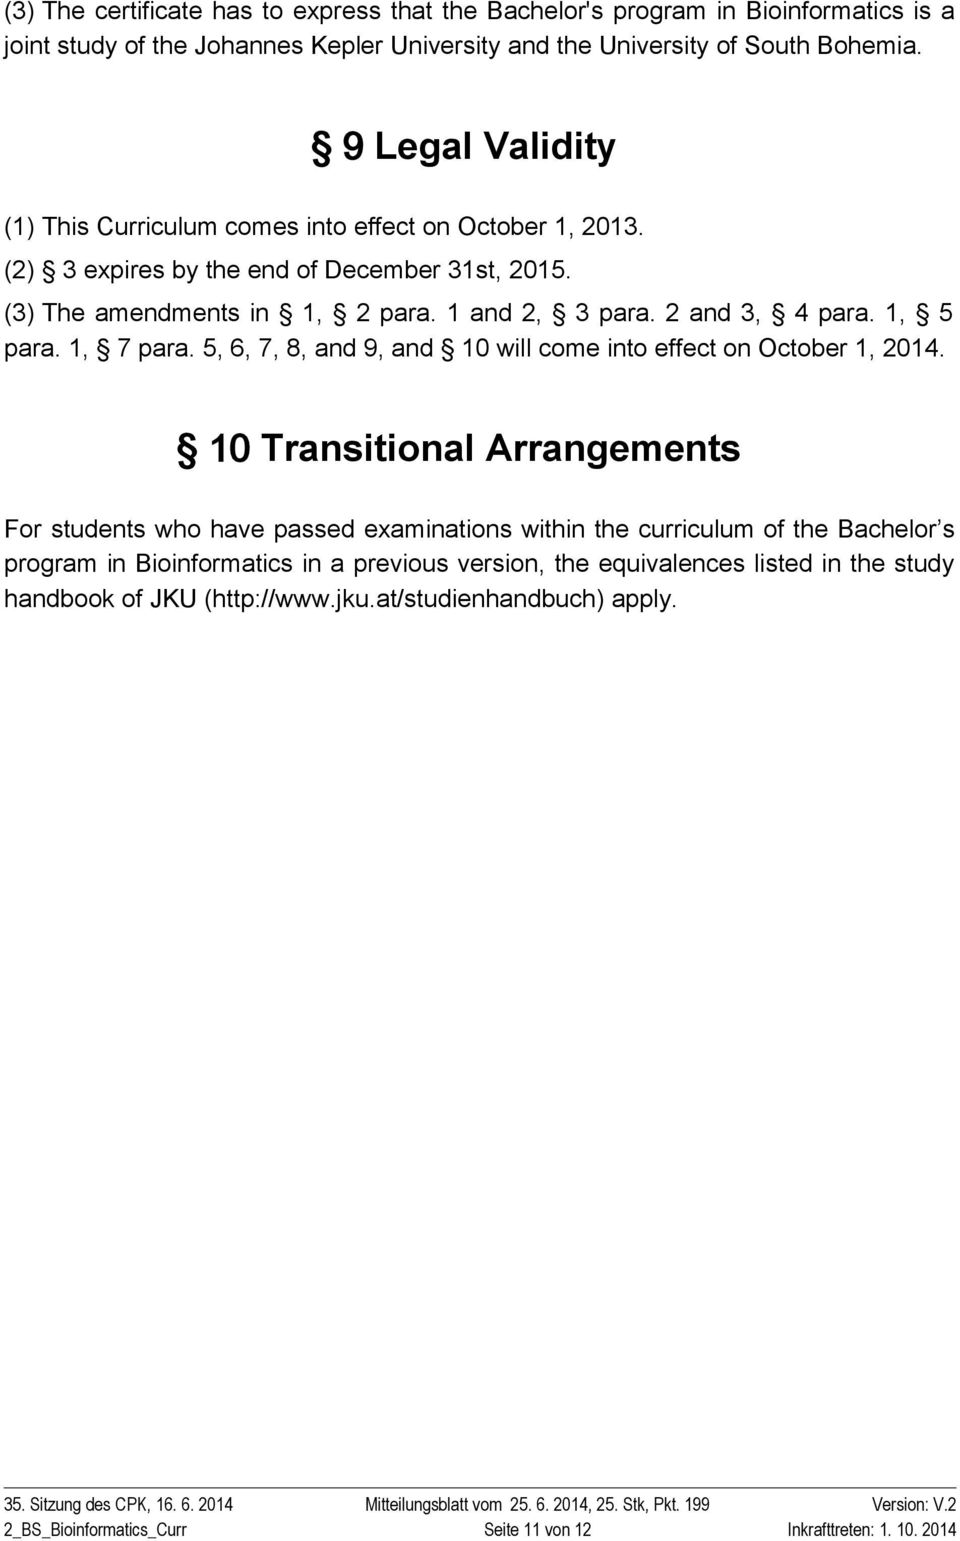 1, 5 para. 1, 7 para. 5, 6, 7, 8, and 9, and 10 will come into effect on October 1, 2014.